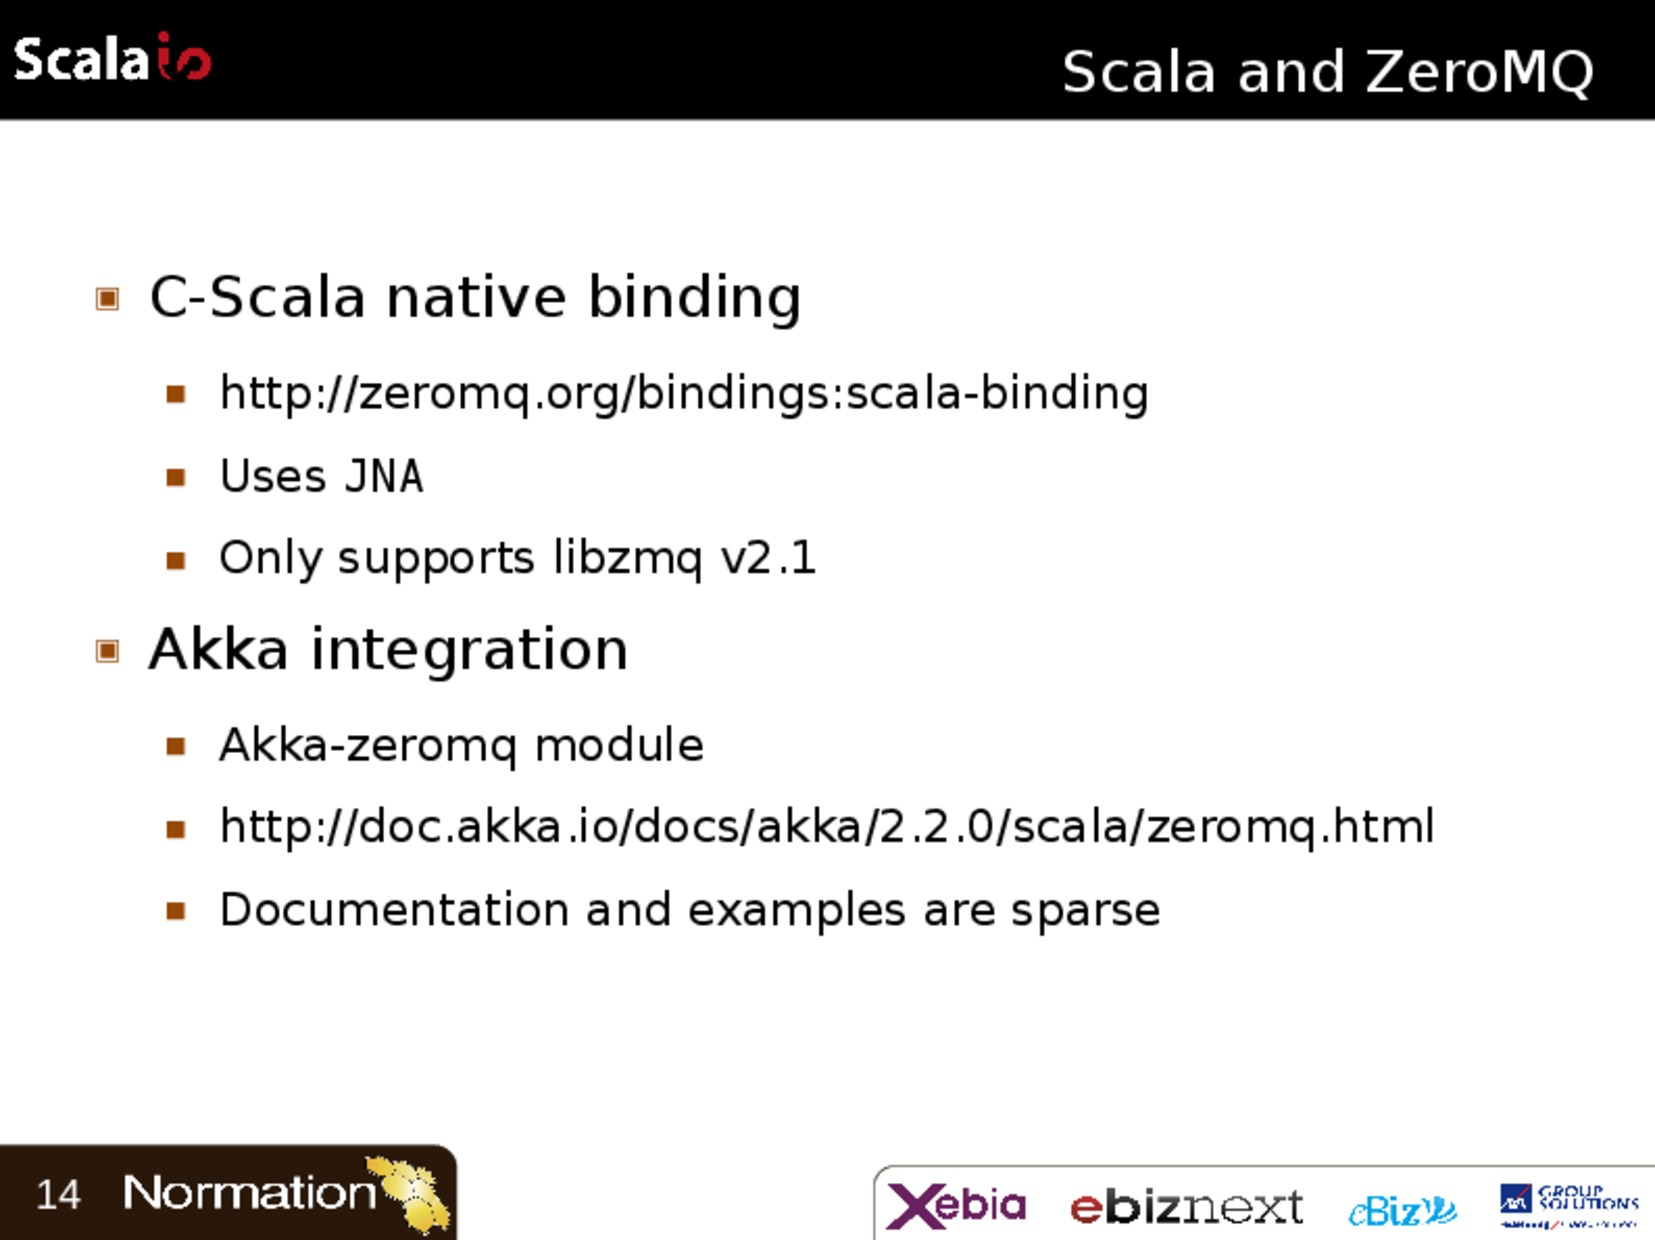 Scala and ZeroMQ, Events beyond the JVM